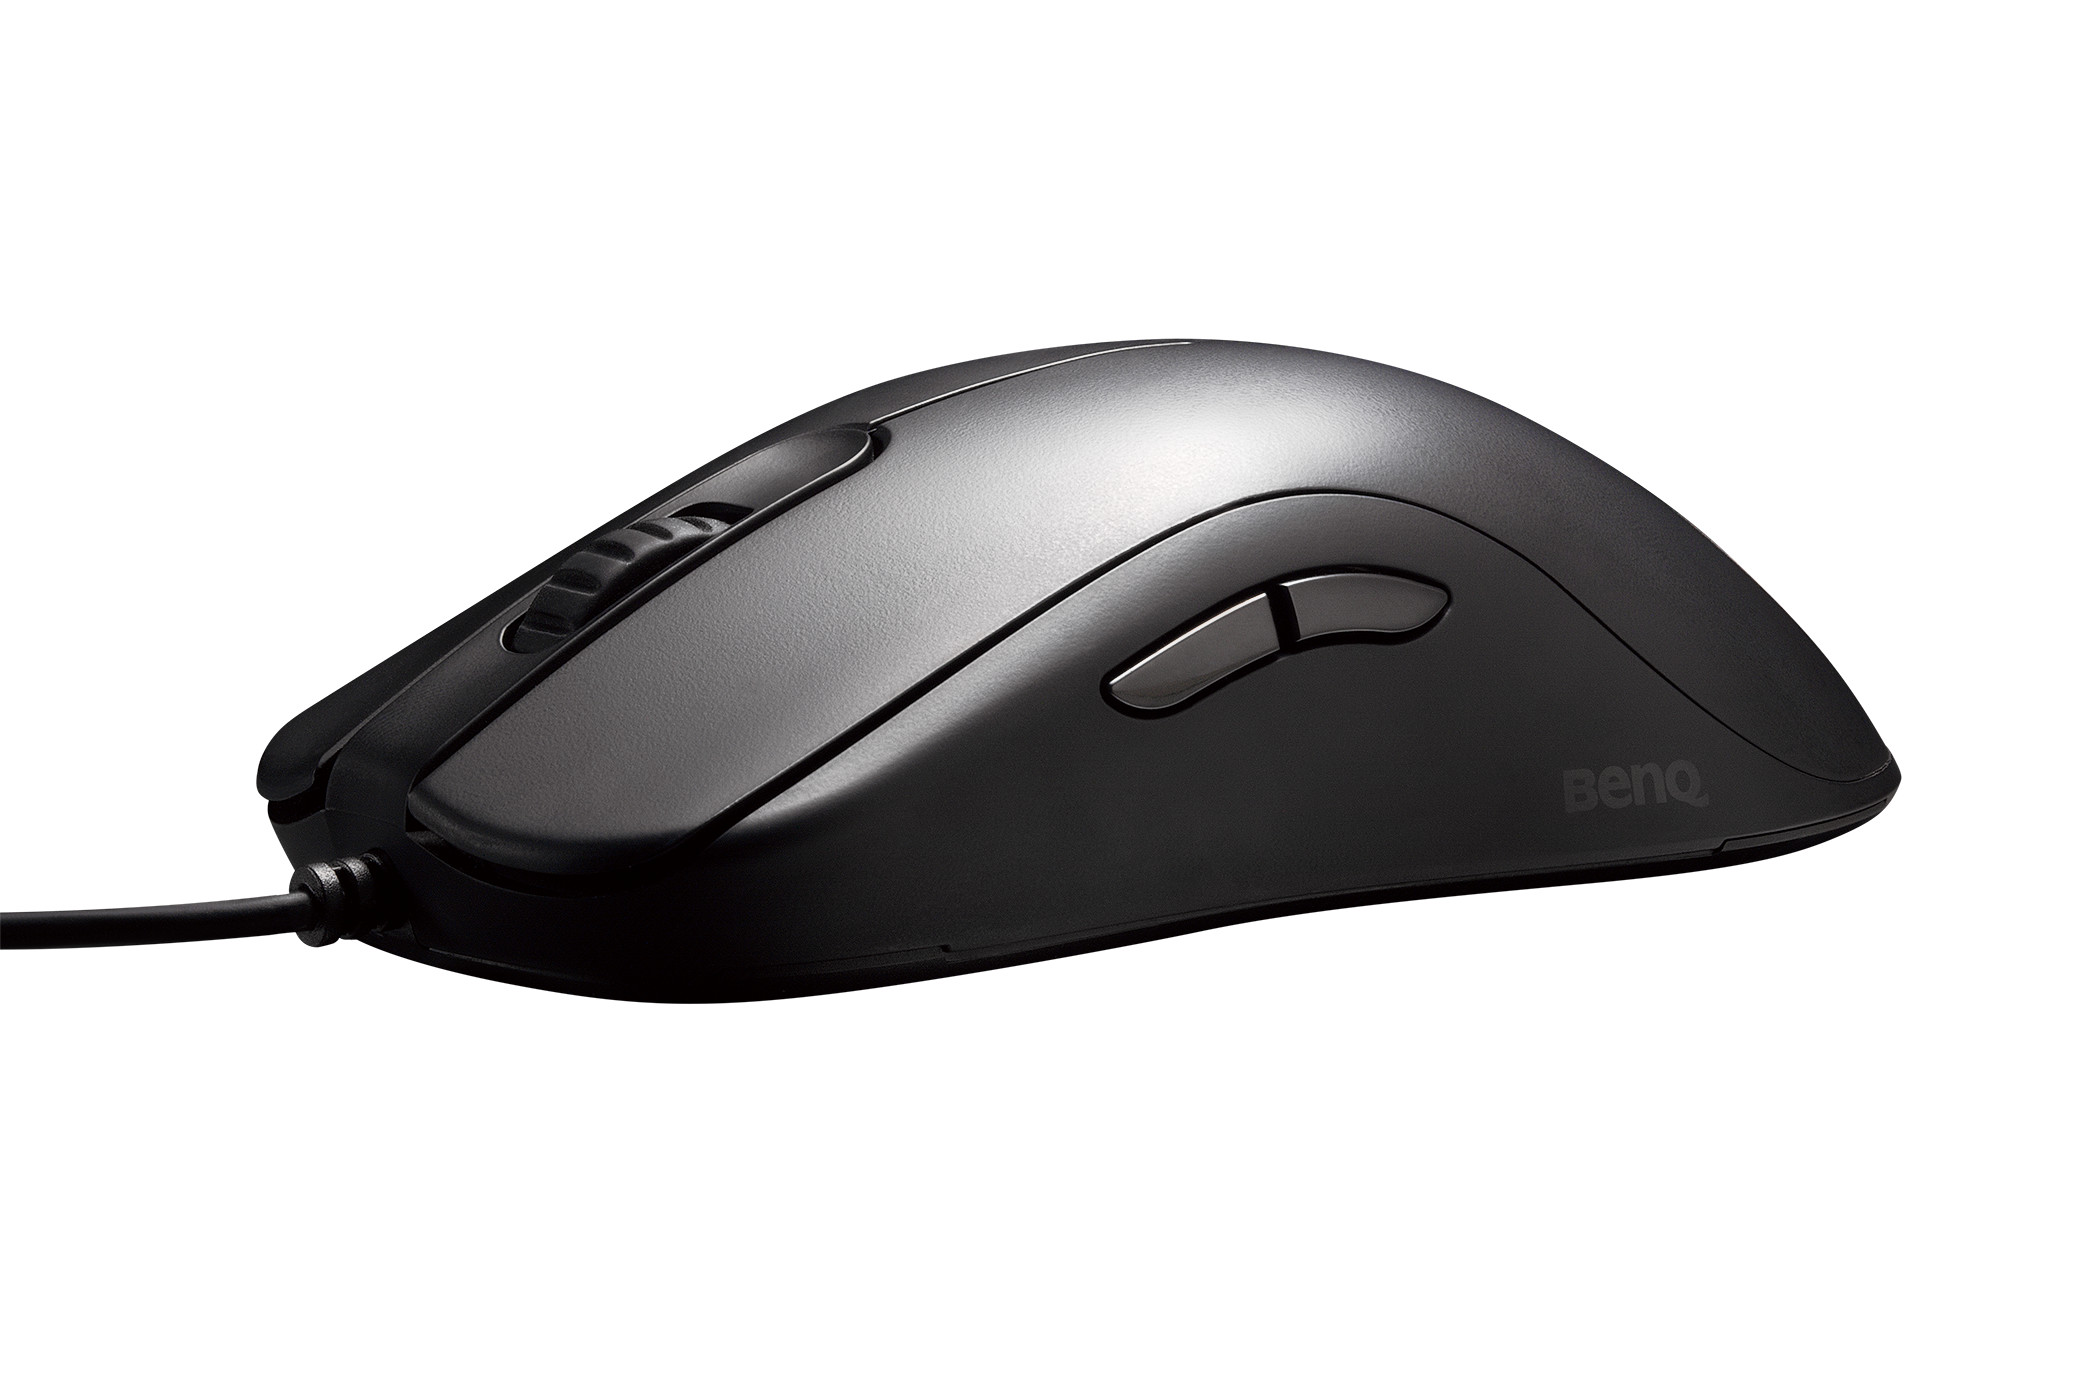 Benq Mouse M101 Windows 8 Driver Download